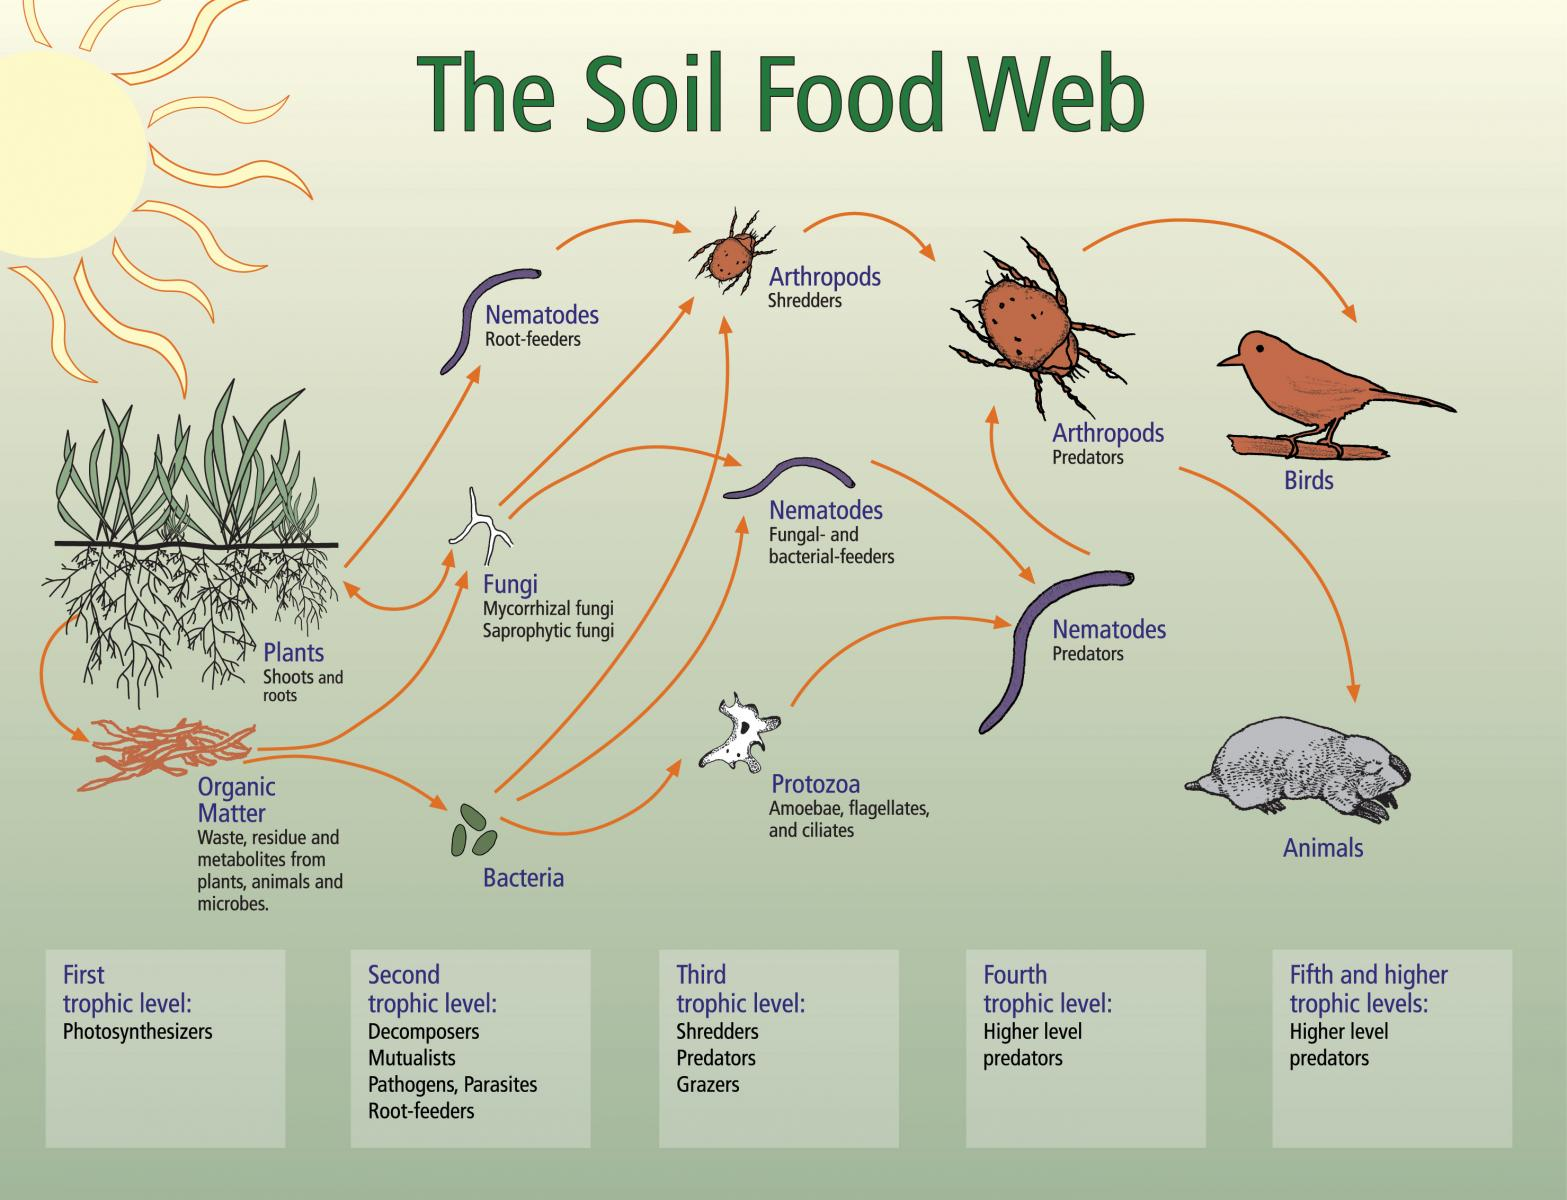 Graphic of The Soil Food Web